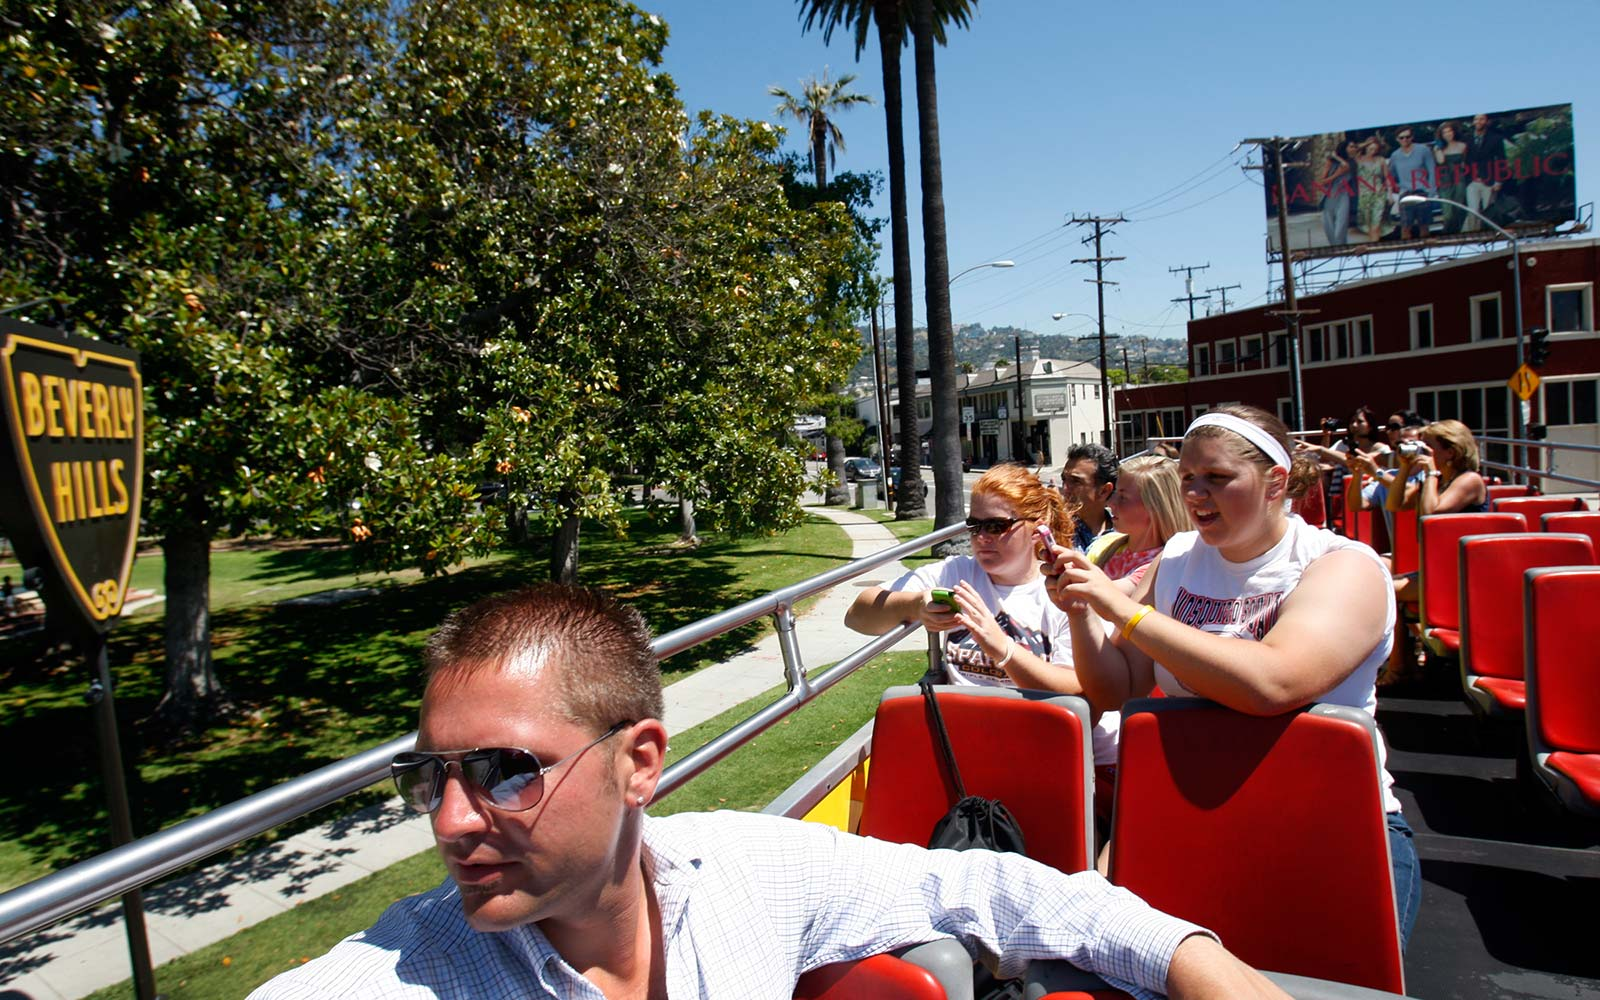 Tour Buses Are Being Banned From Parts of the Hollywood Hills